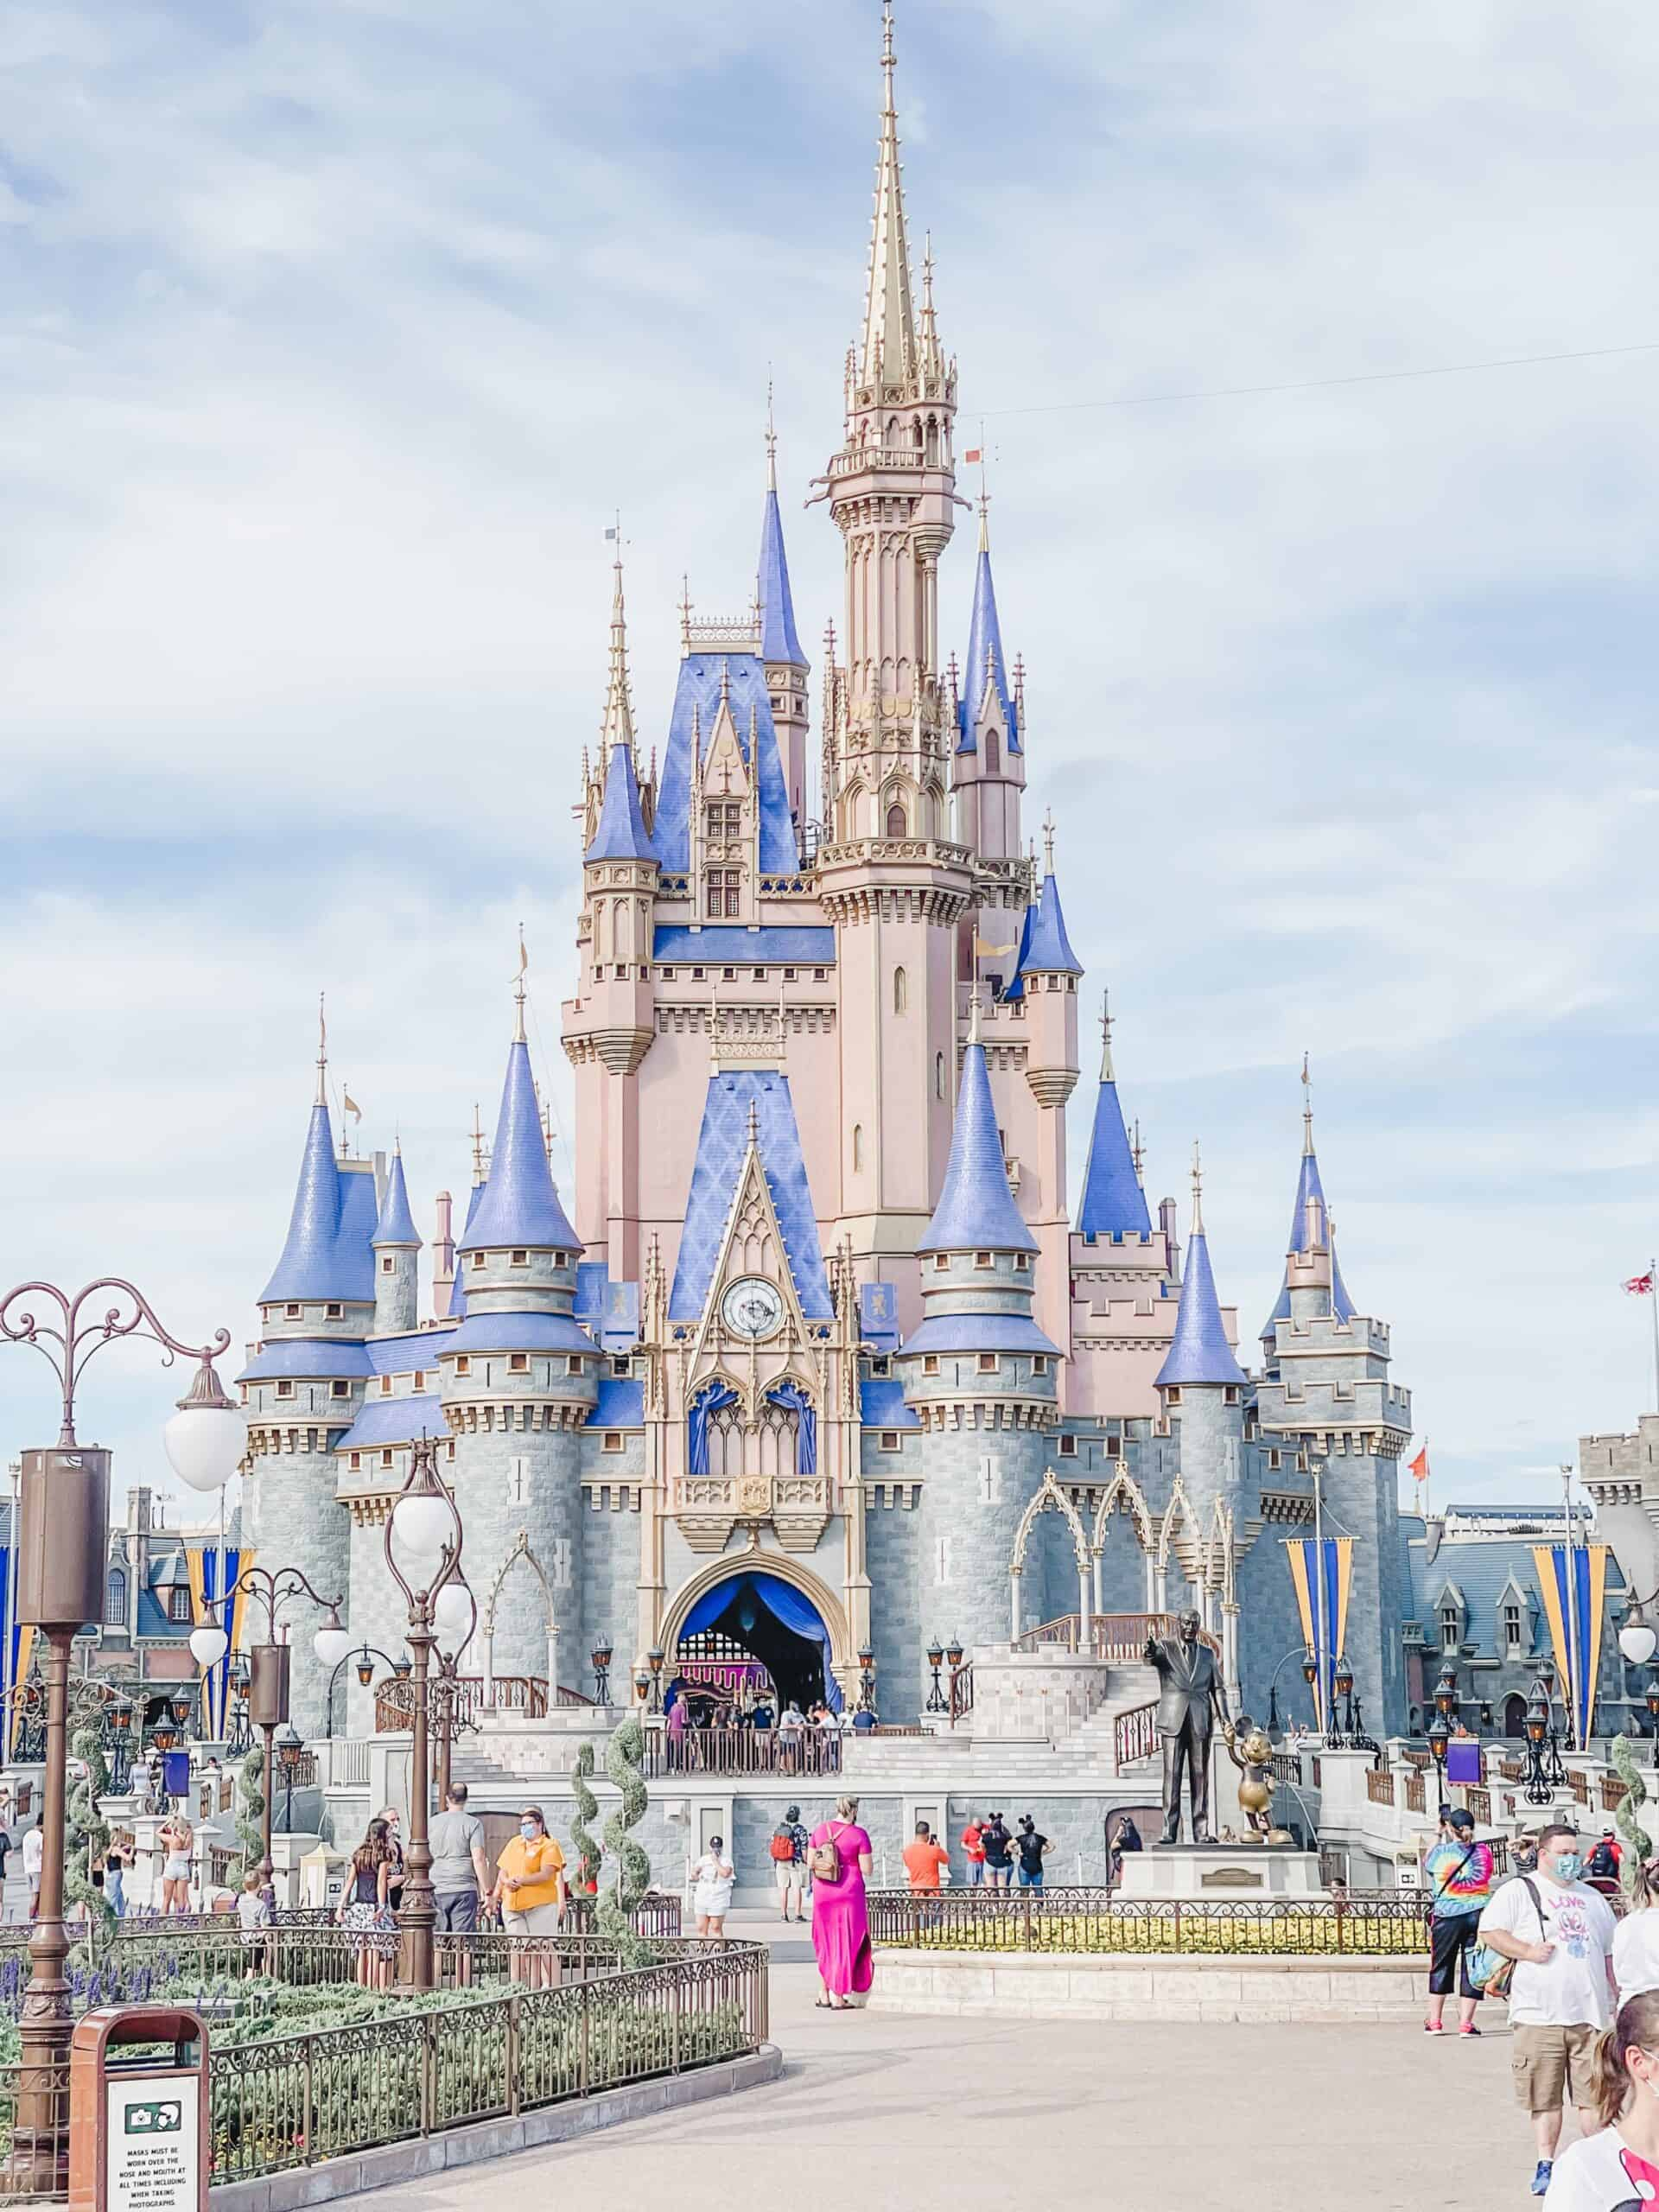 Our lodging off-site for four days while visiting Disney World.  We stayed at an airbnb in Kissimmee, Florida for less than $1200 for four days! #disneyworld #disney #kissimmee #orlando #florida #offproperty #disneyresort